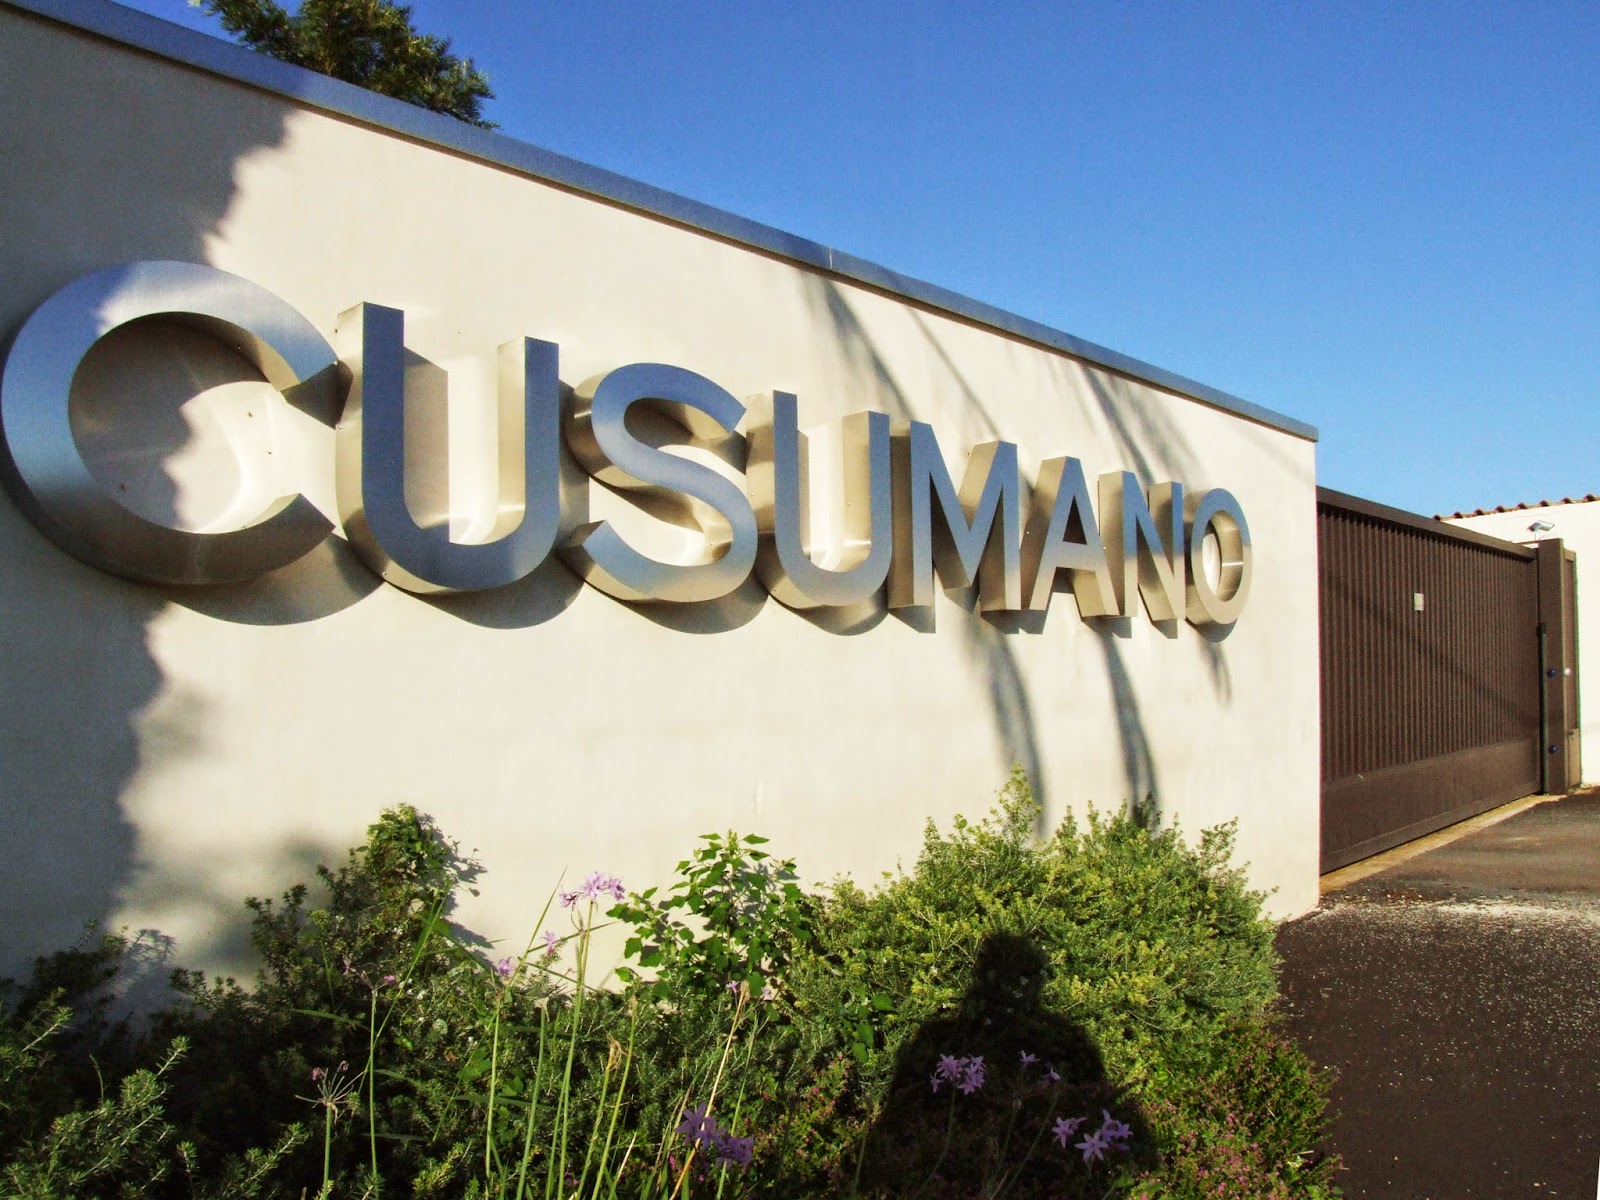 Cusumano winery in Sicily